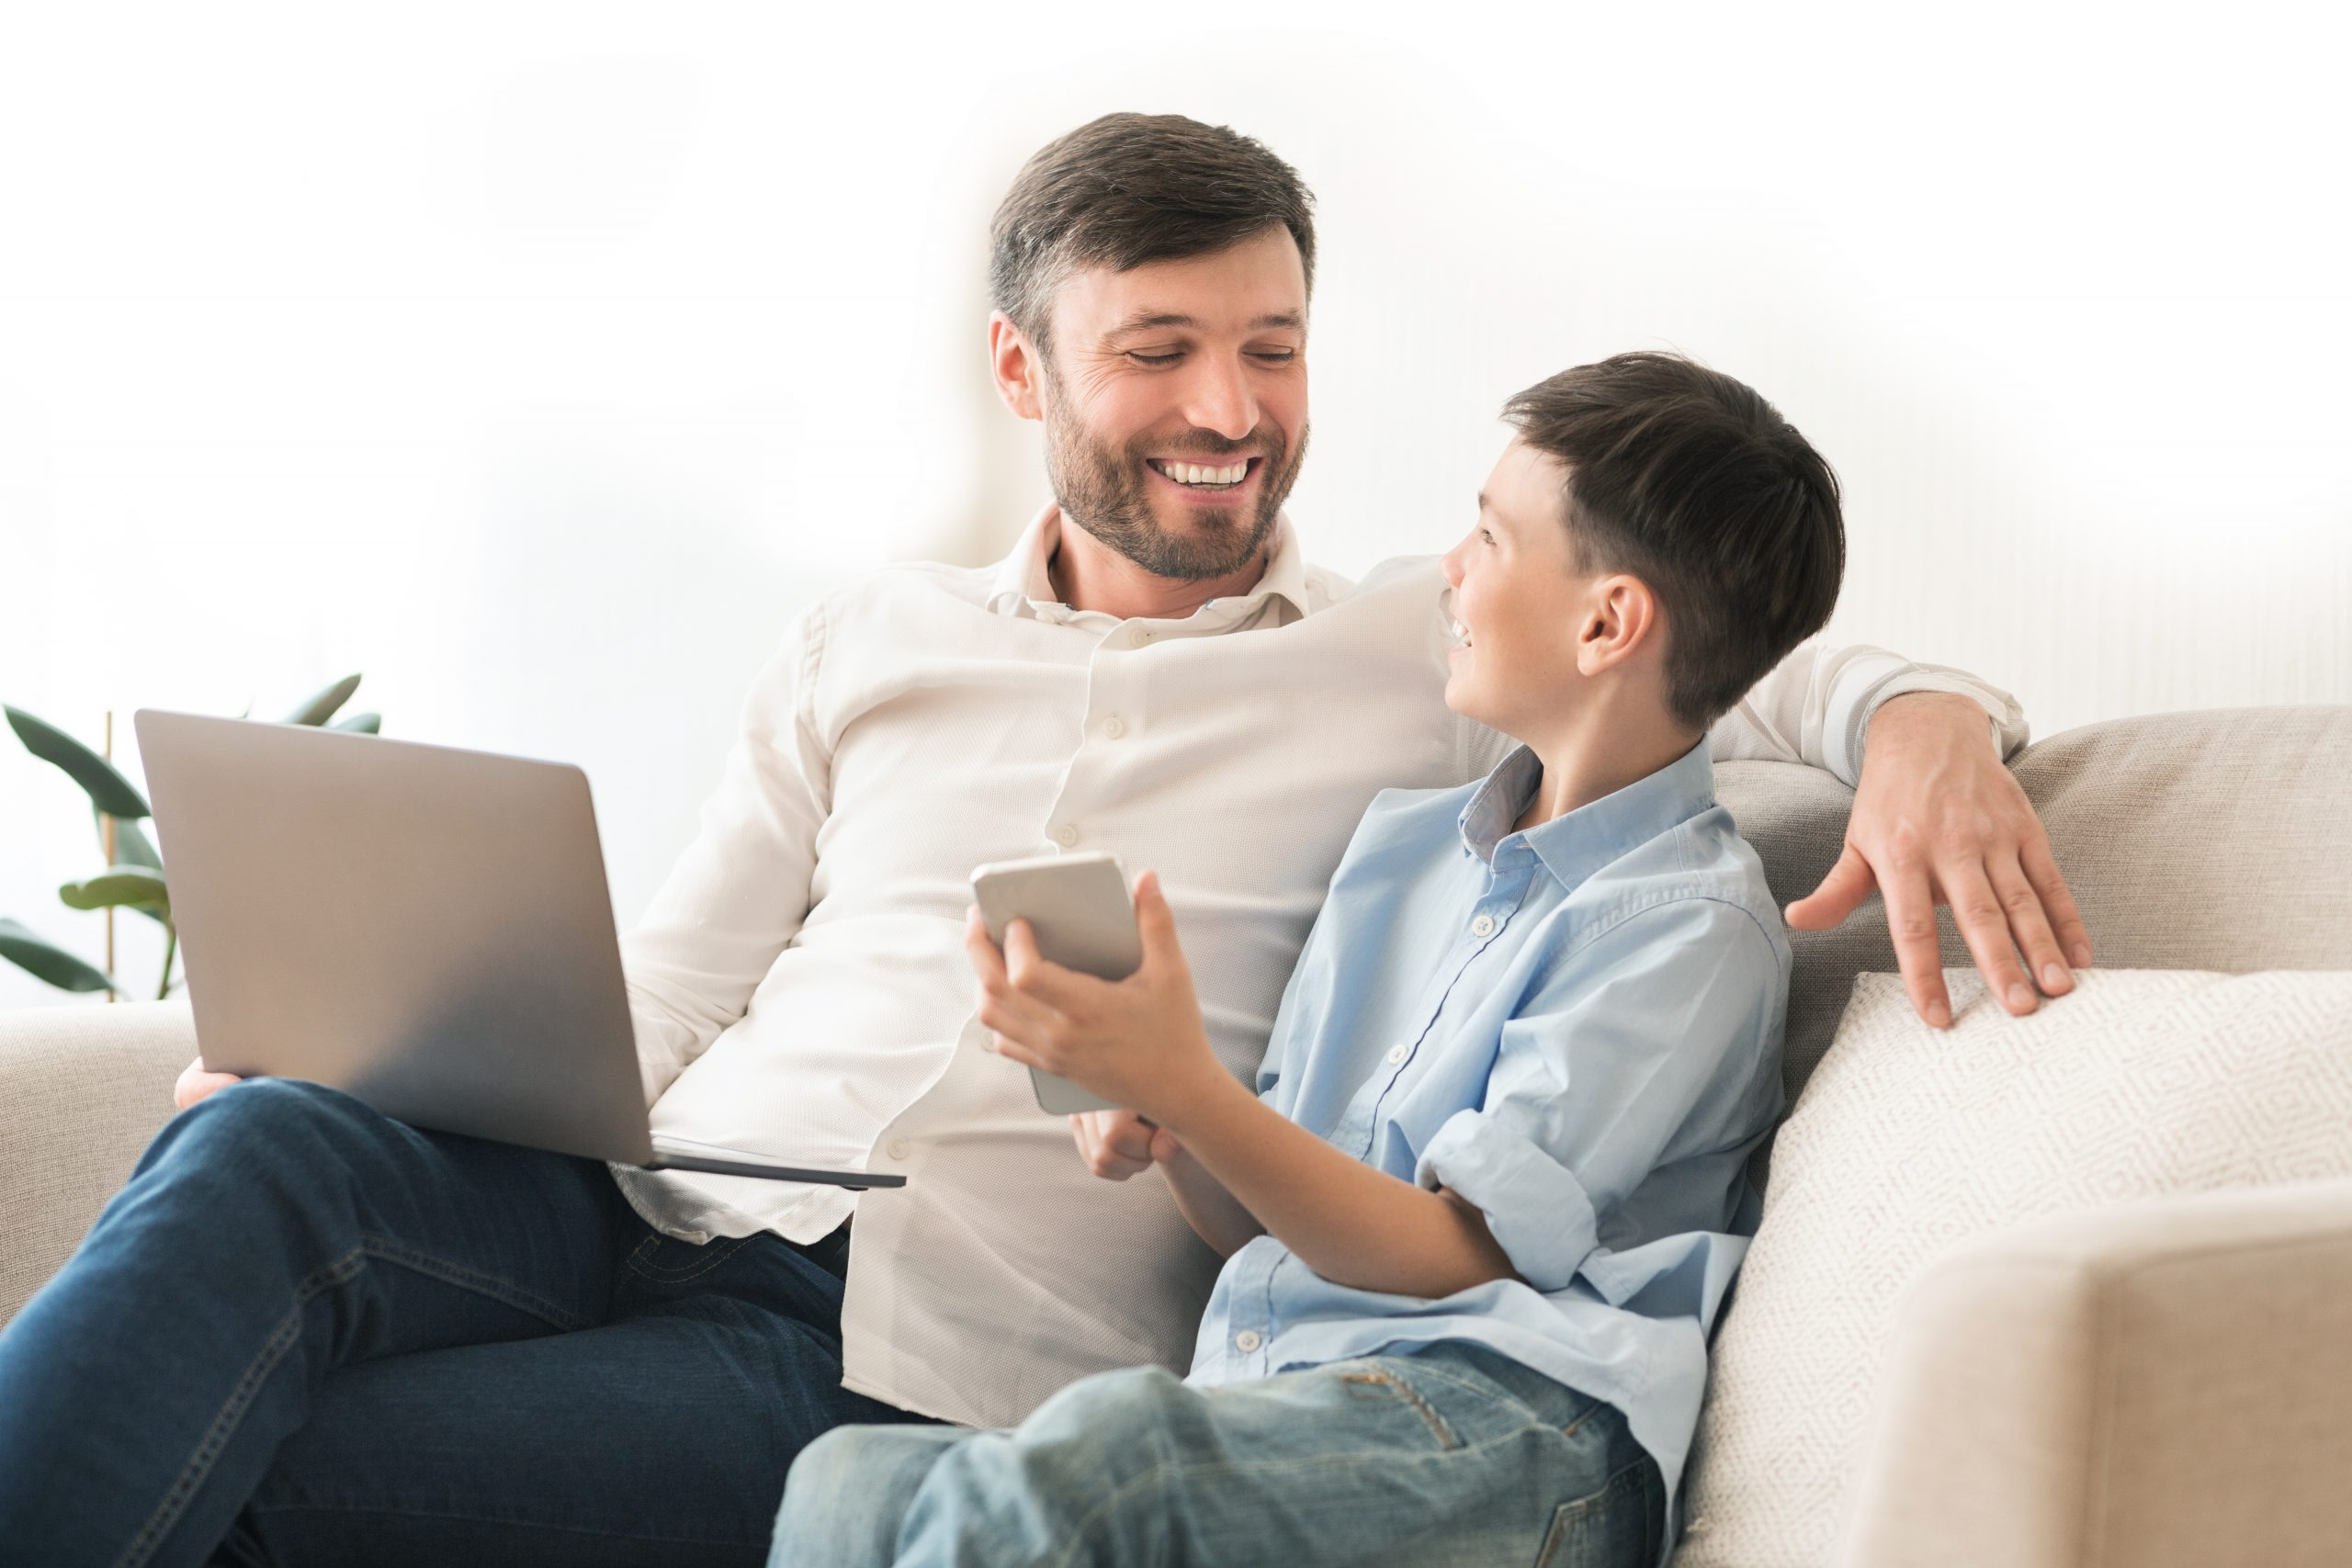 Father and son sitting on couch with laptop and smartphone